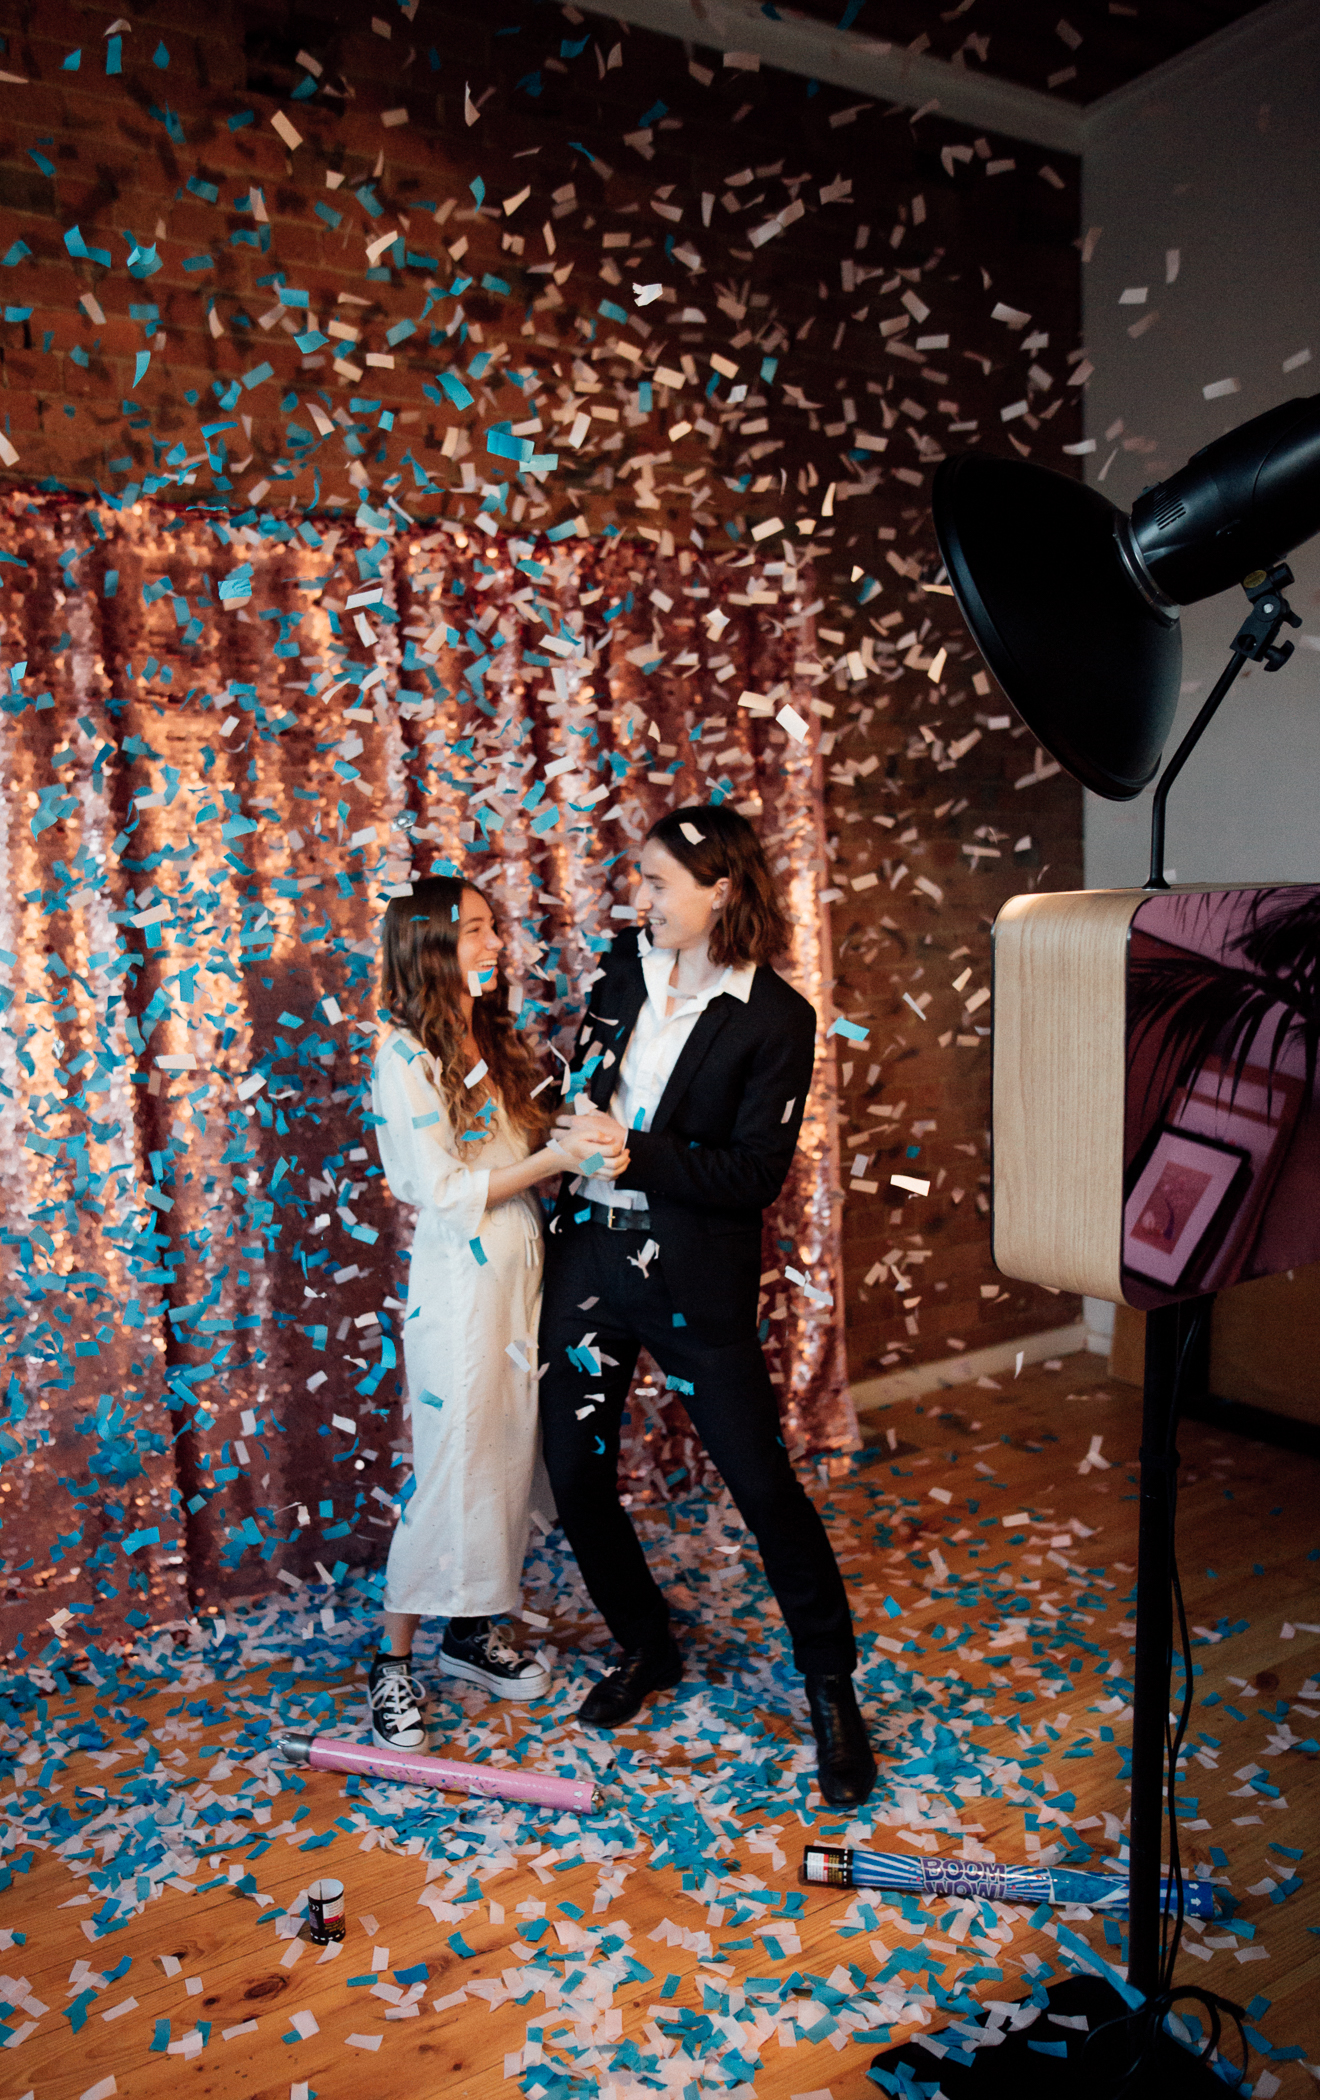 10 tips for confetti at your wedding